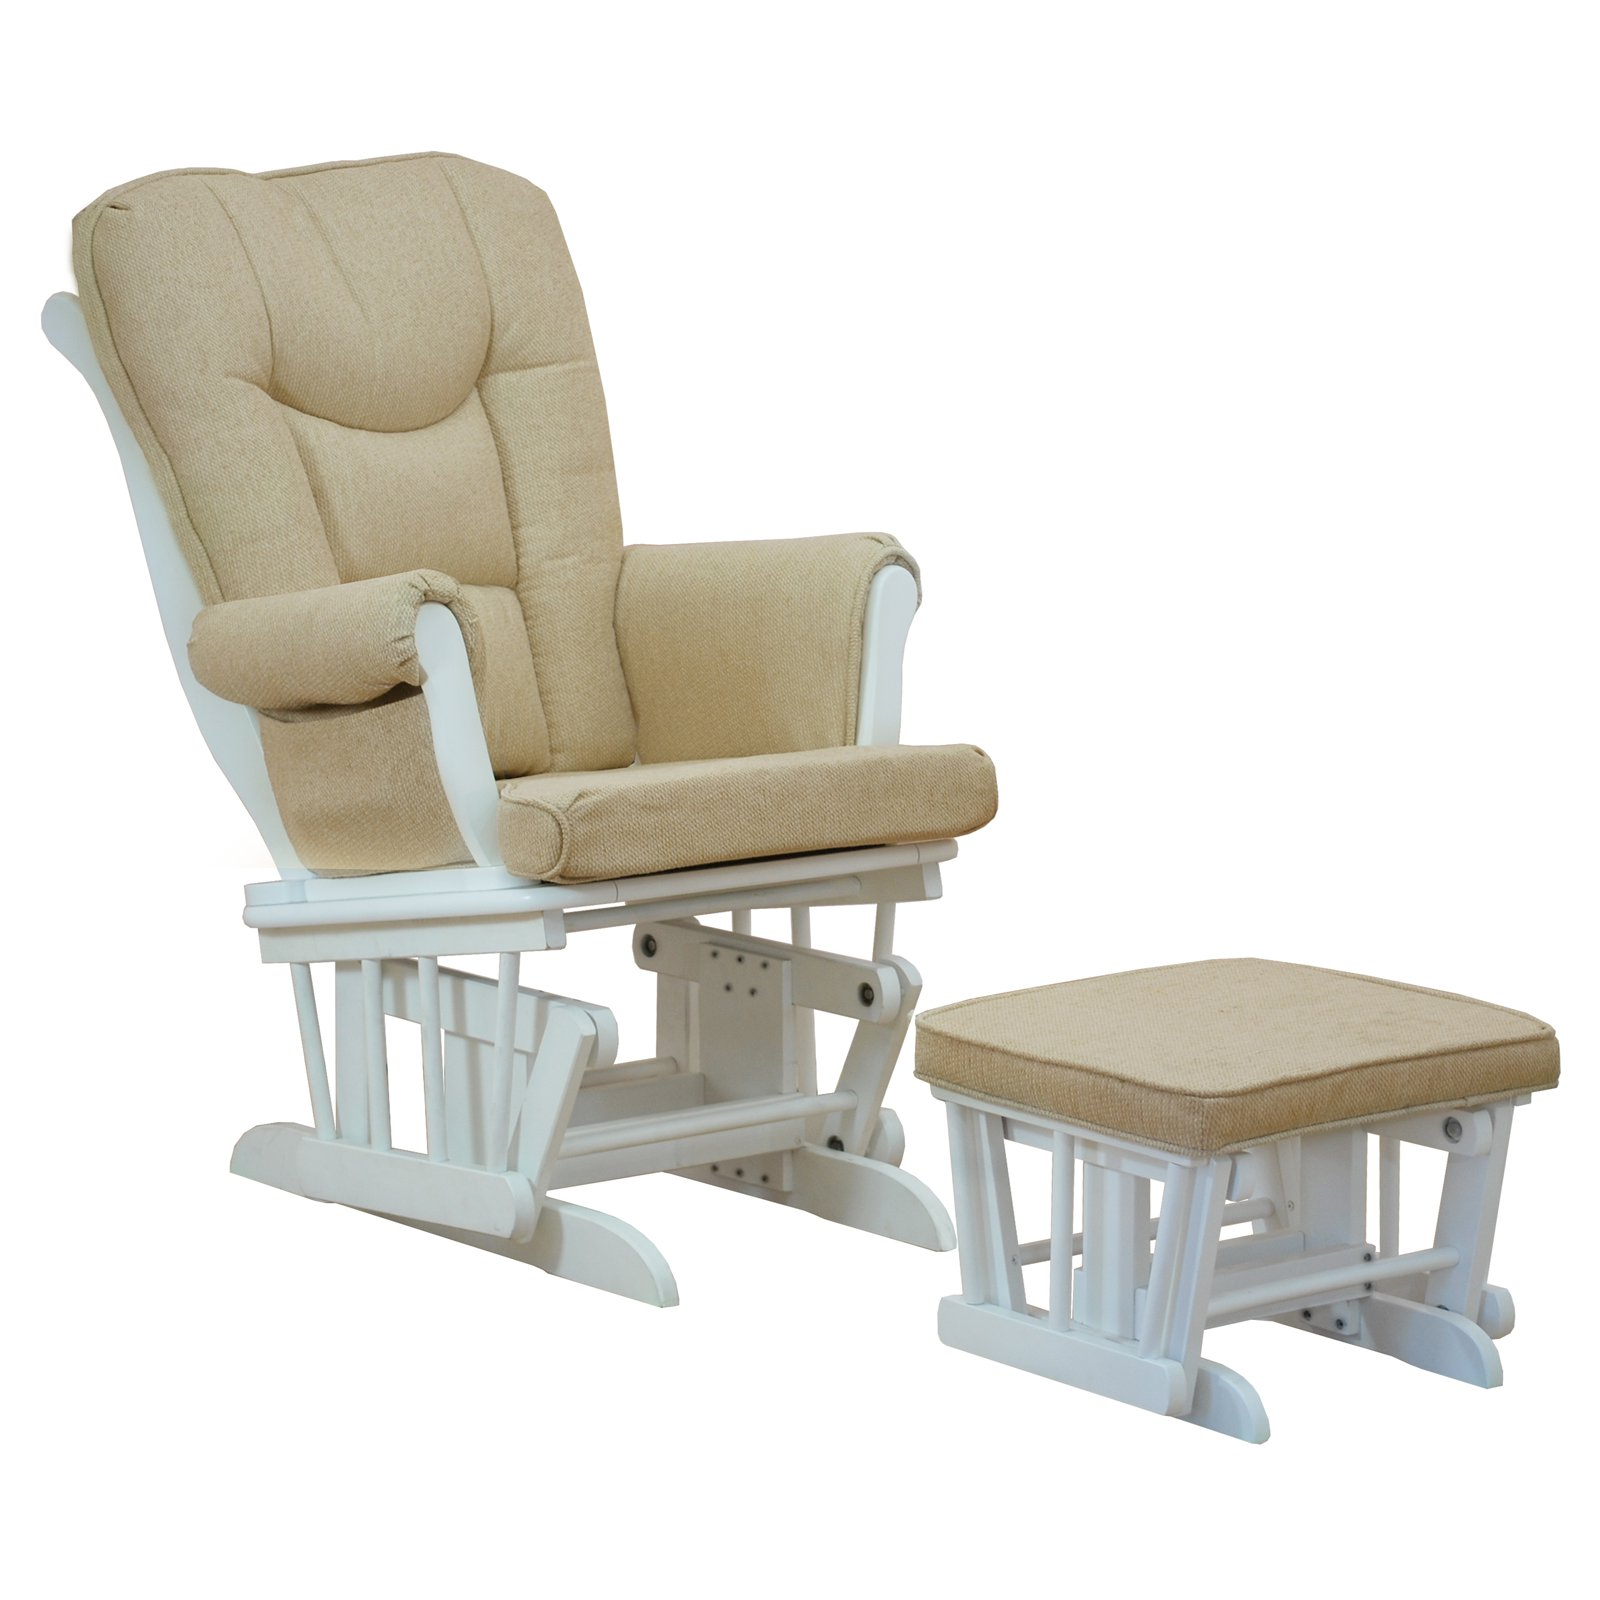 Athena Sleigh Glider Chair with Ottoman